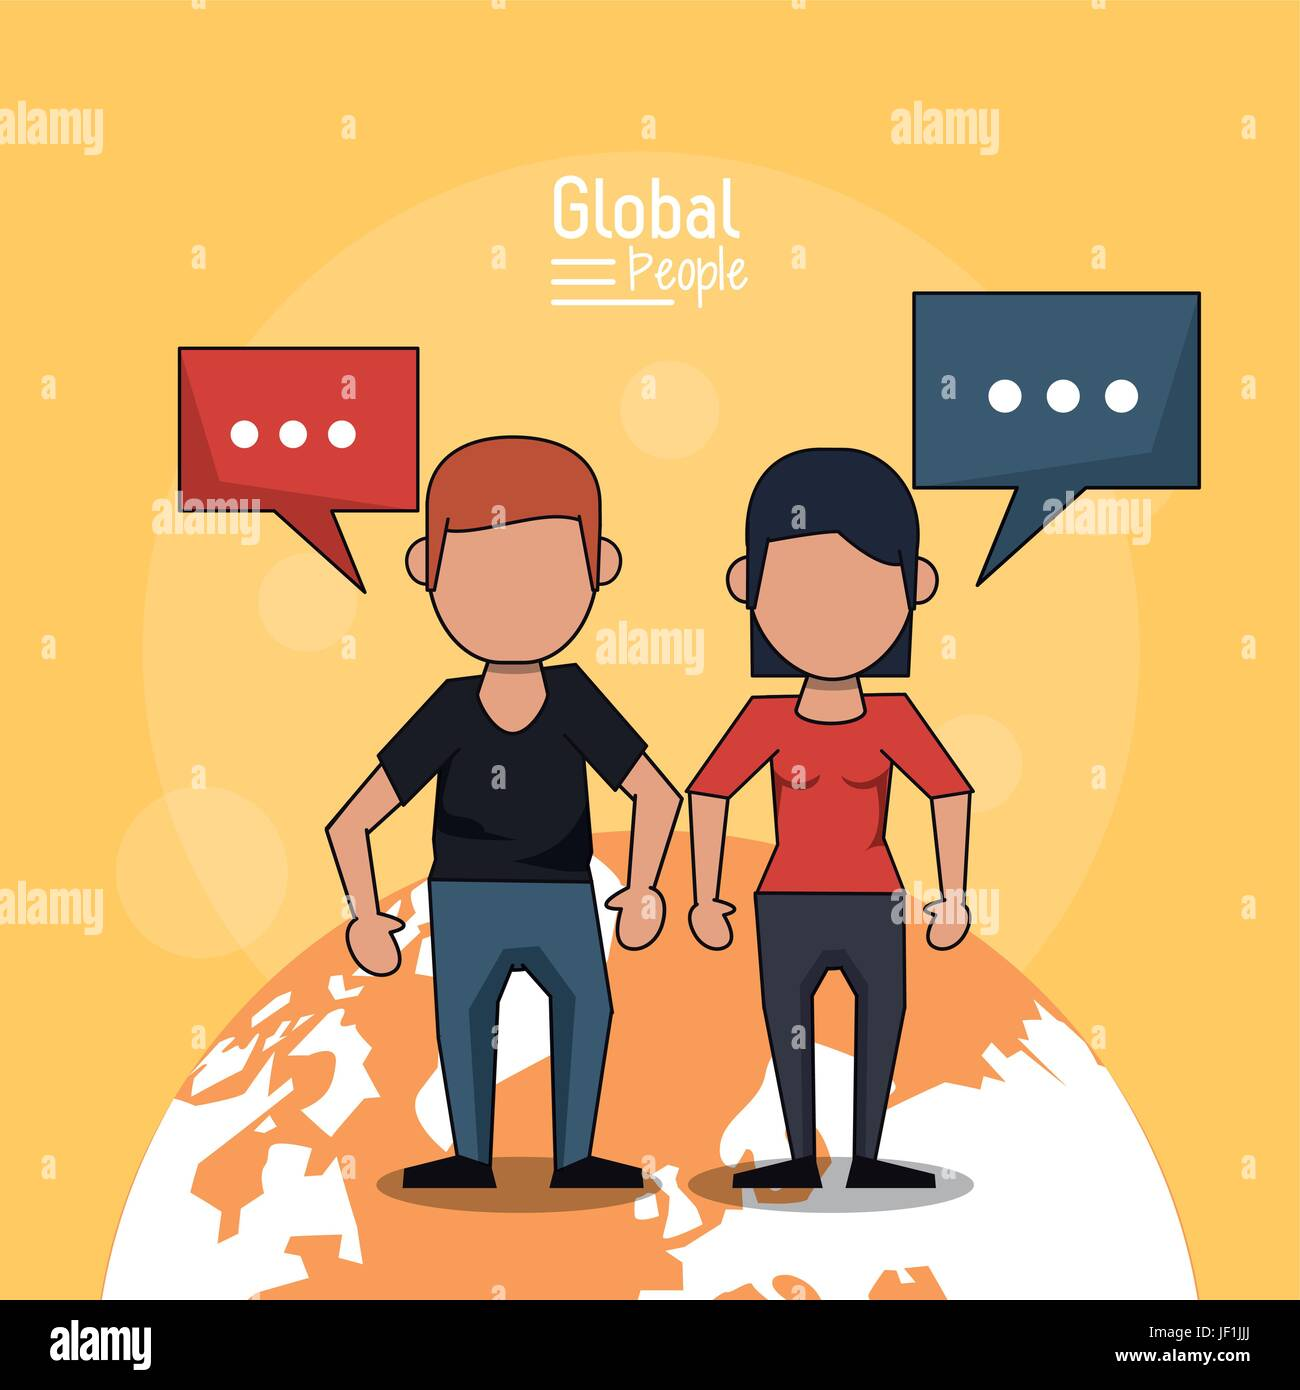 poster of global people with light orange background with faceless couple over planet earth and text dialogues - Stock Image